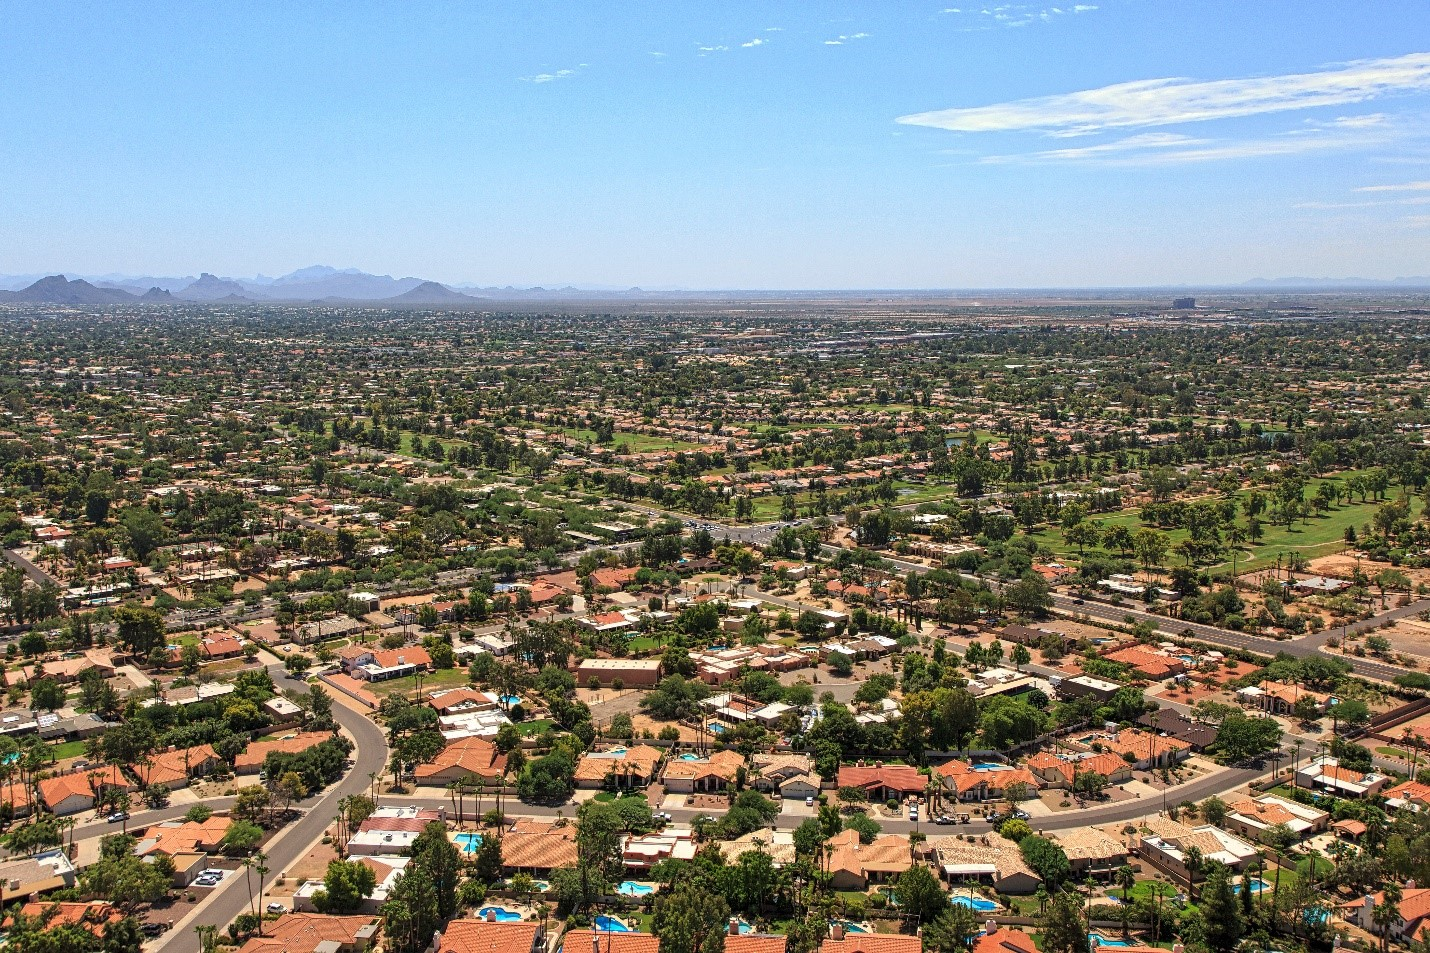 An Aerial Photo of a Neighborhood with Great Arizona Curb Appeal